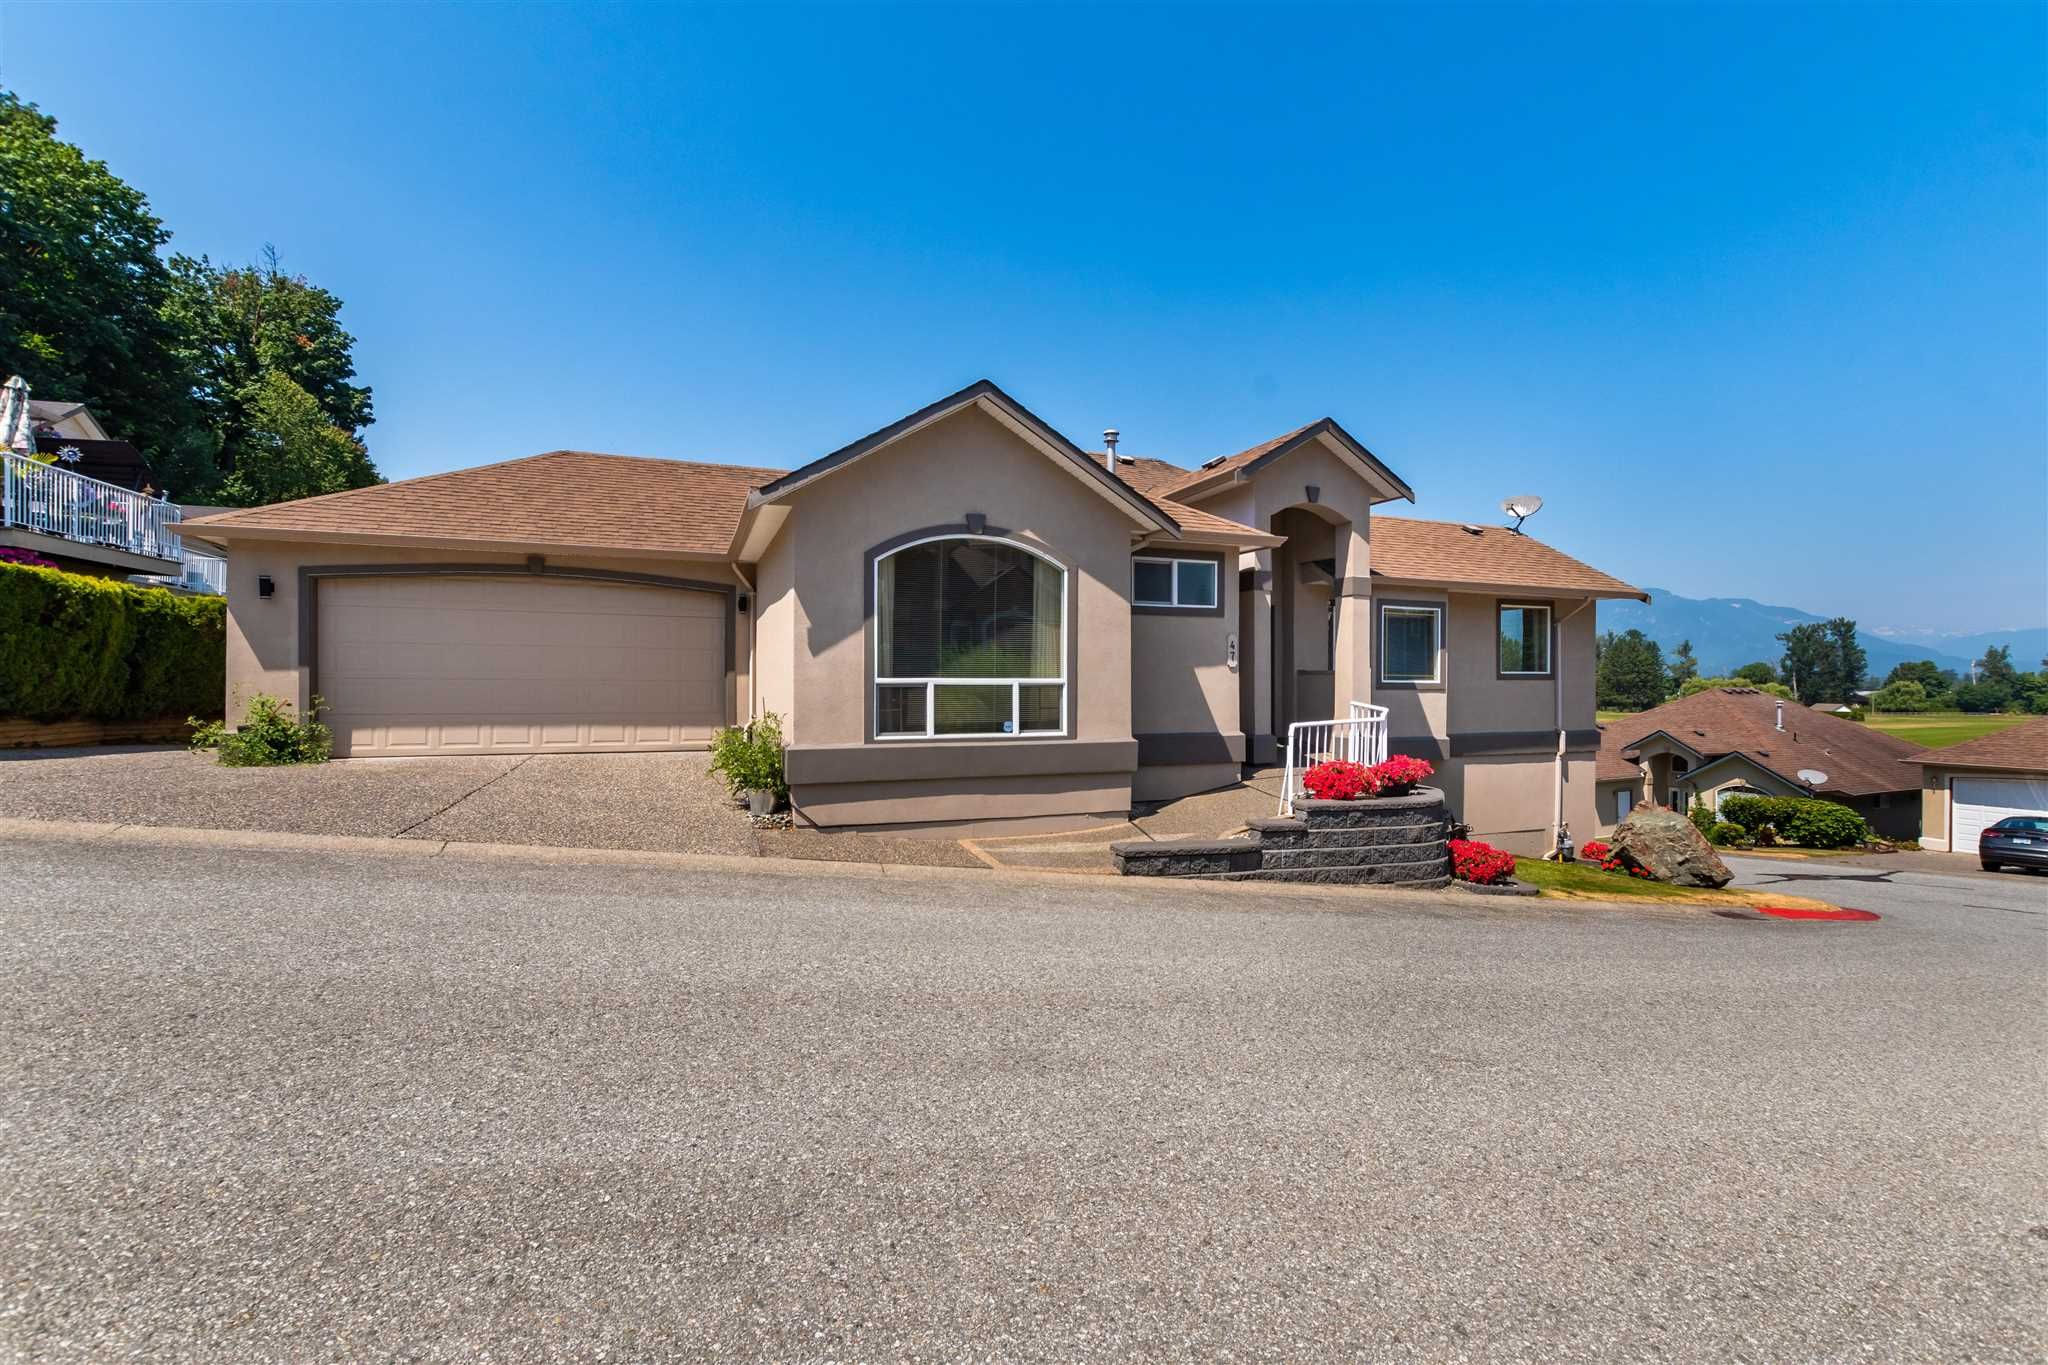 """Main Photo: 47 47470 CHARTWELL Drive in Chilliwack: Little Mountain House for sale in """"GRANDVIEW ESTATES"""" : MLS®# R2599834"""